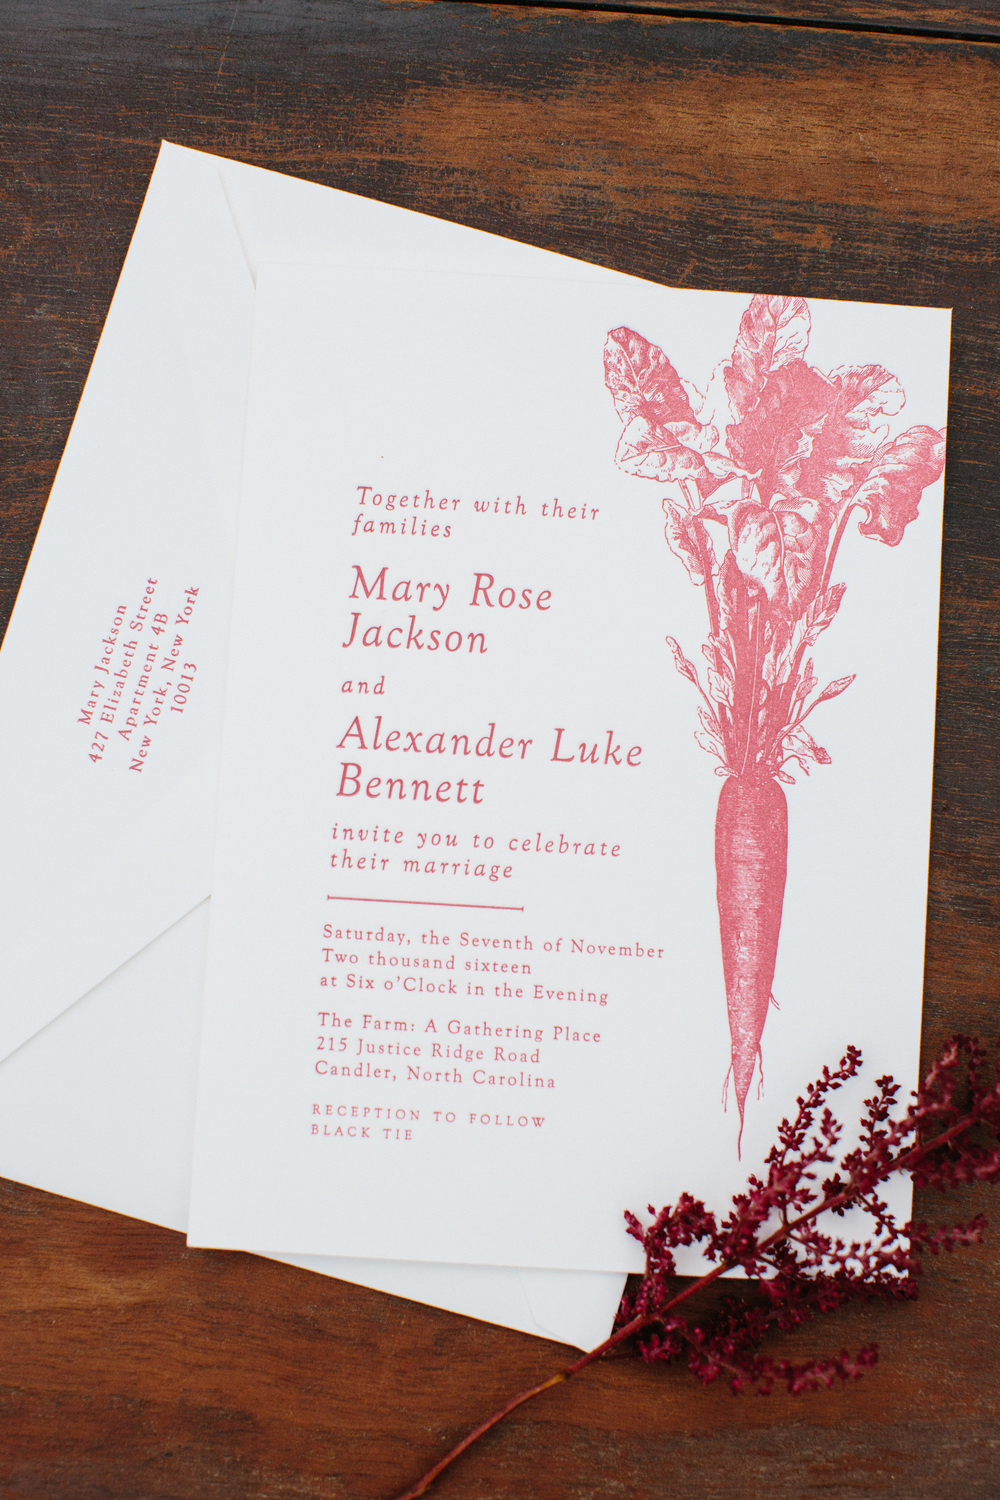 Asheville Wedding Invitation.jpg